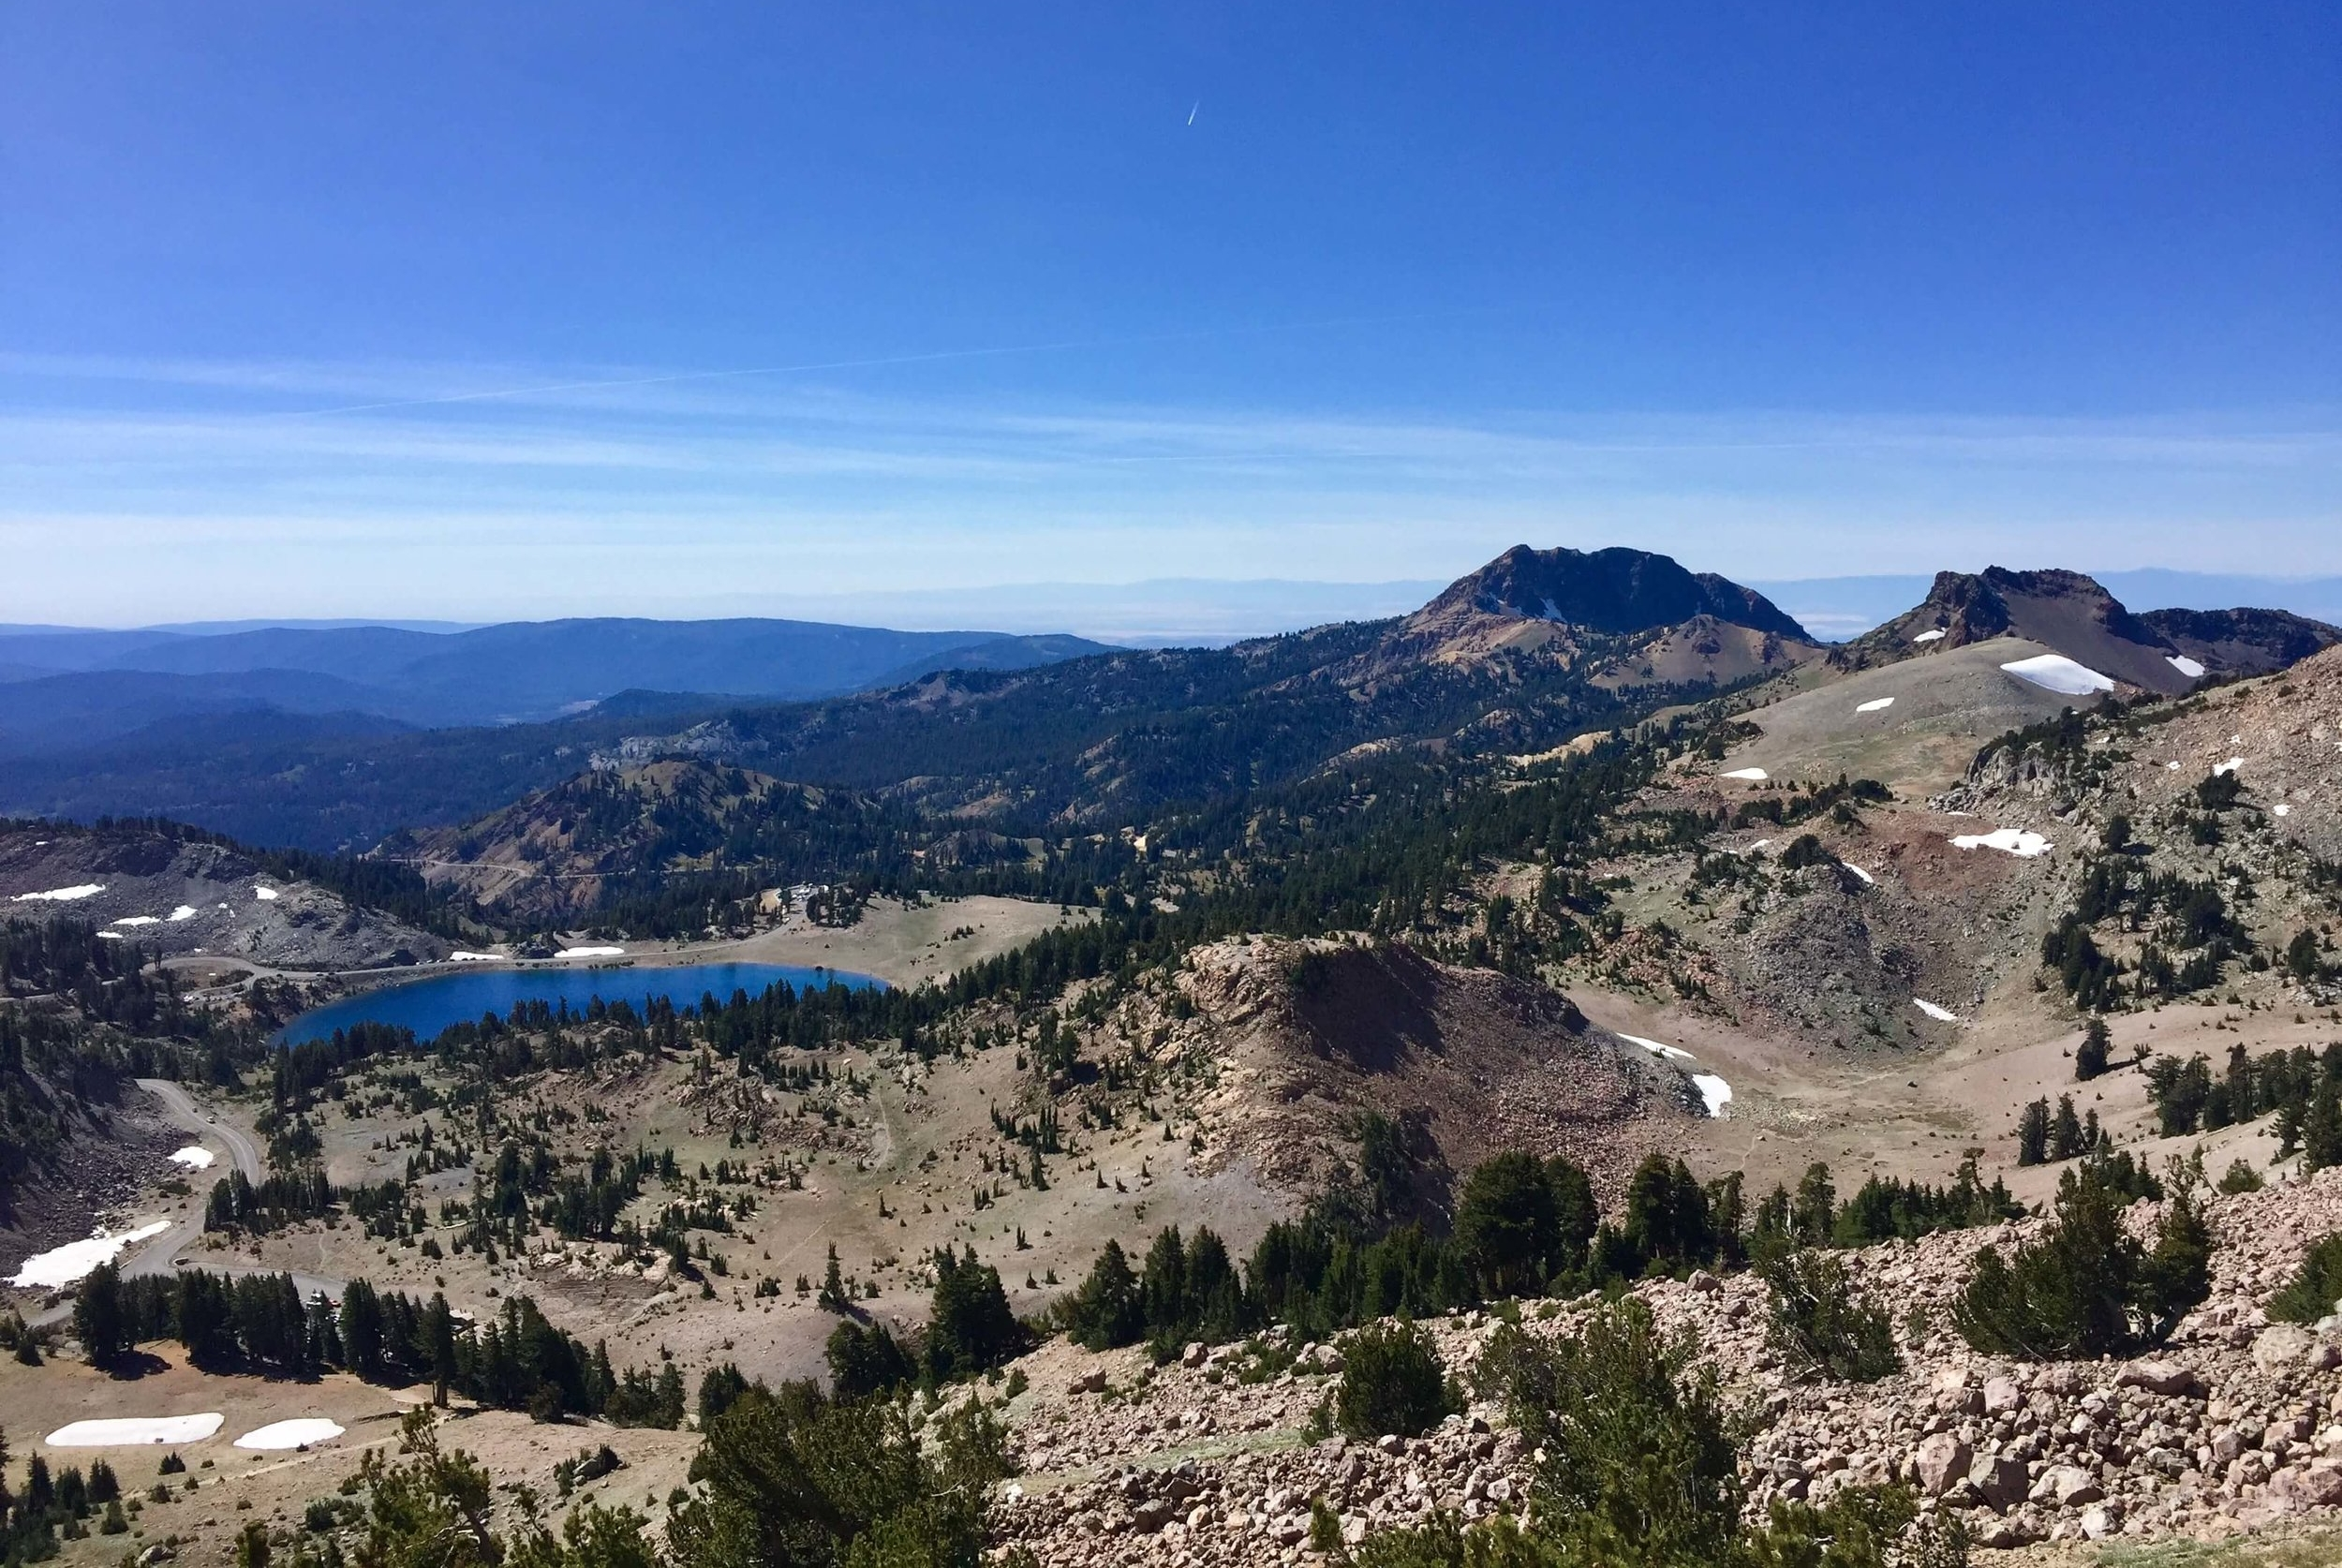 A spectacular view of Lake Helen and Brokeoff Mountain from the Lassen Peak Trail.